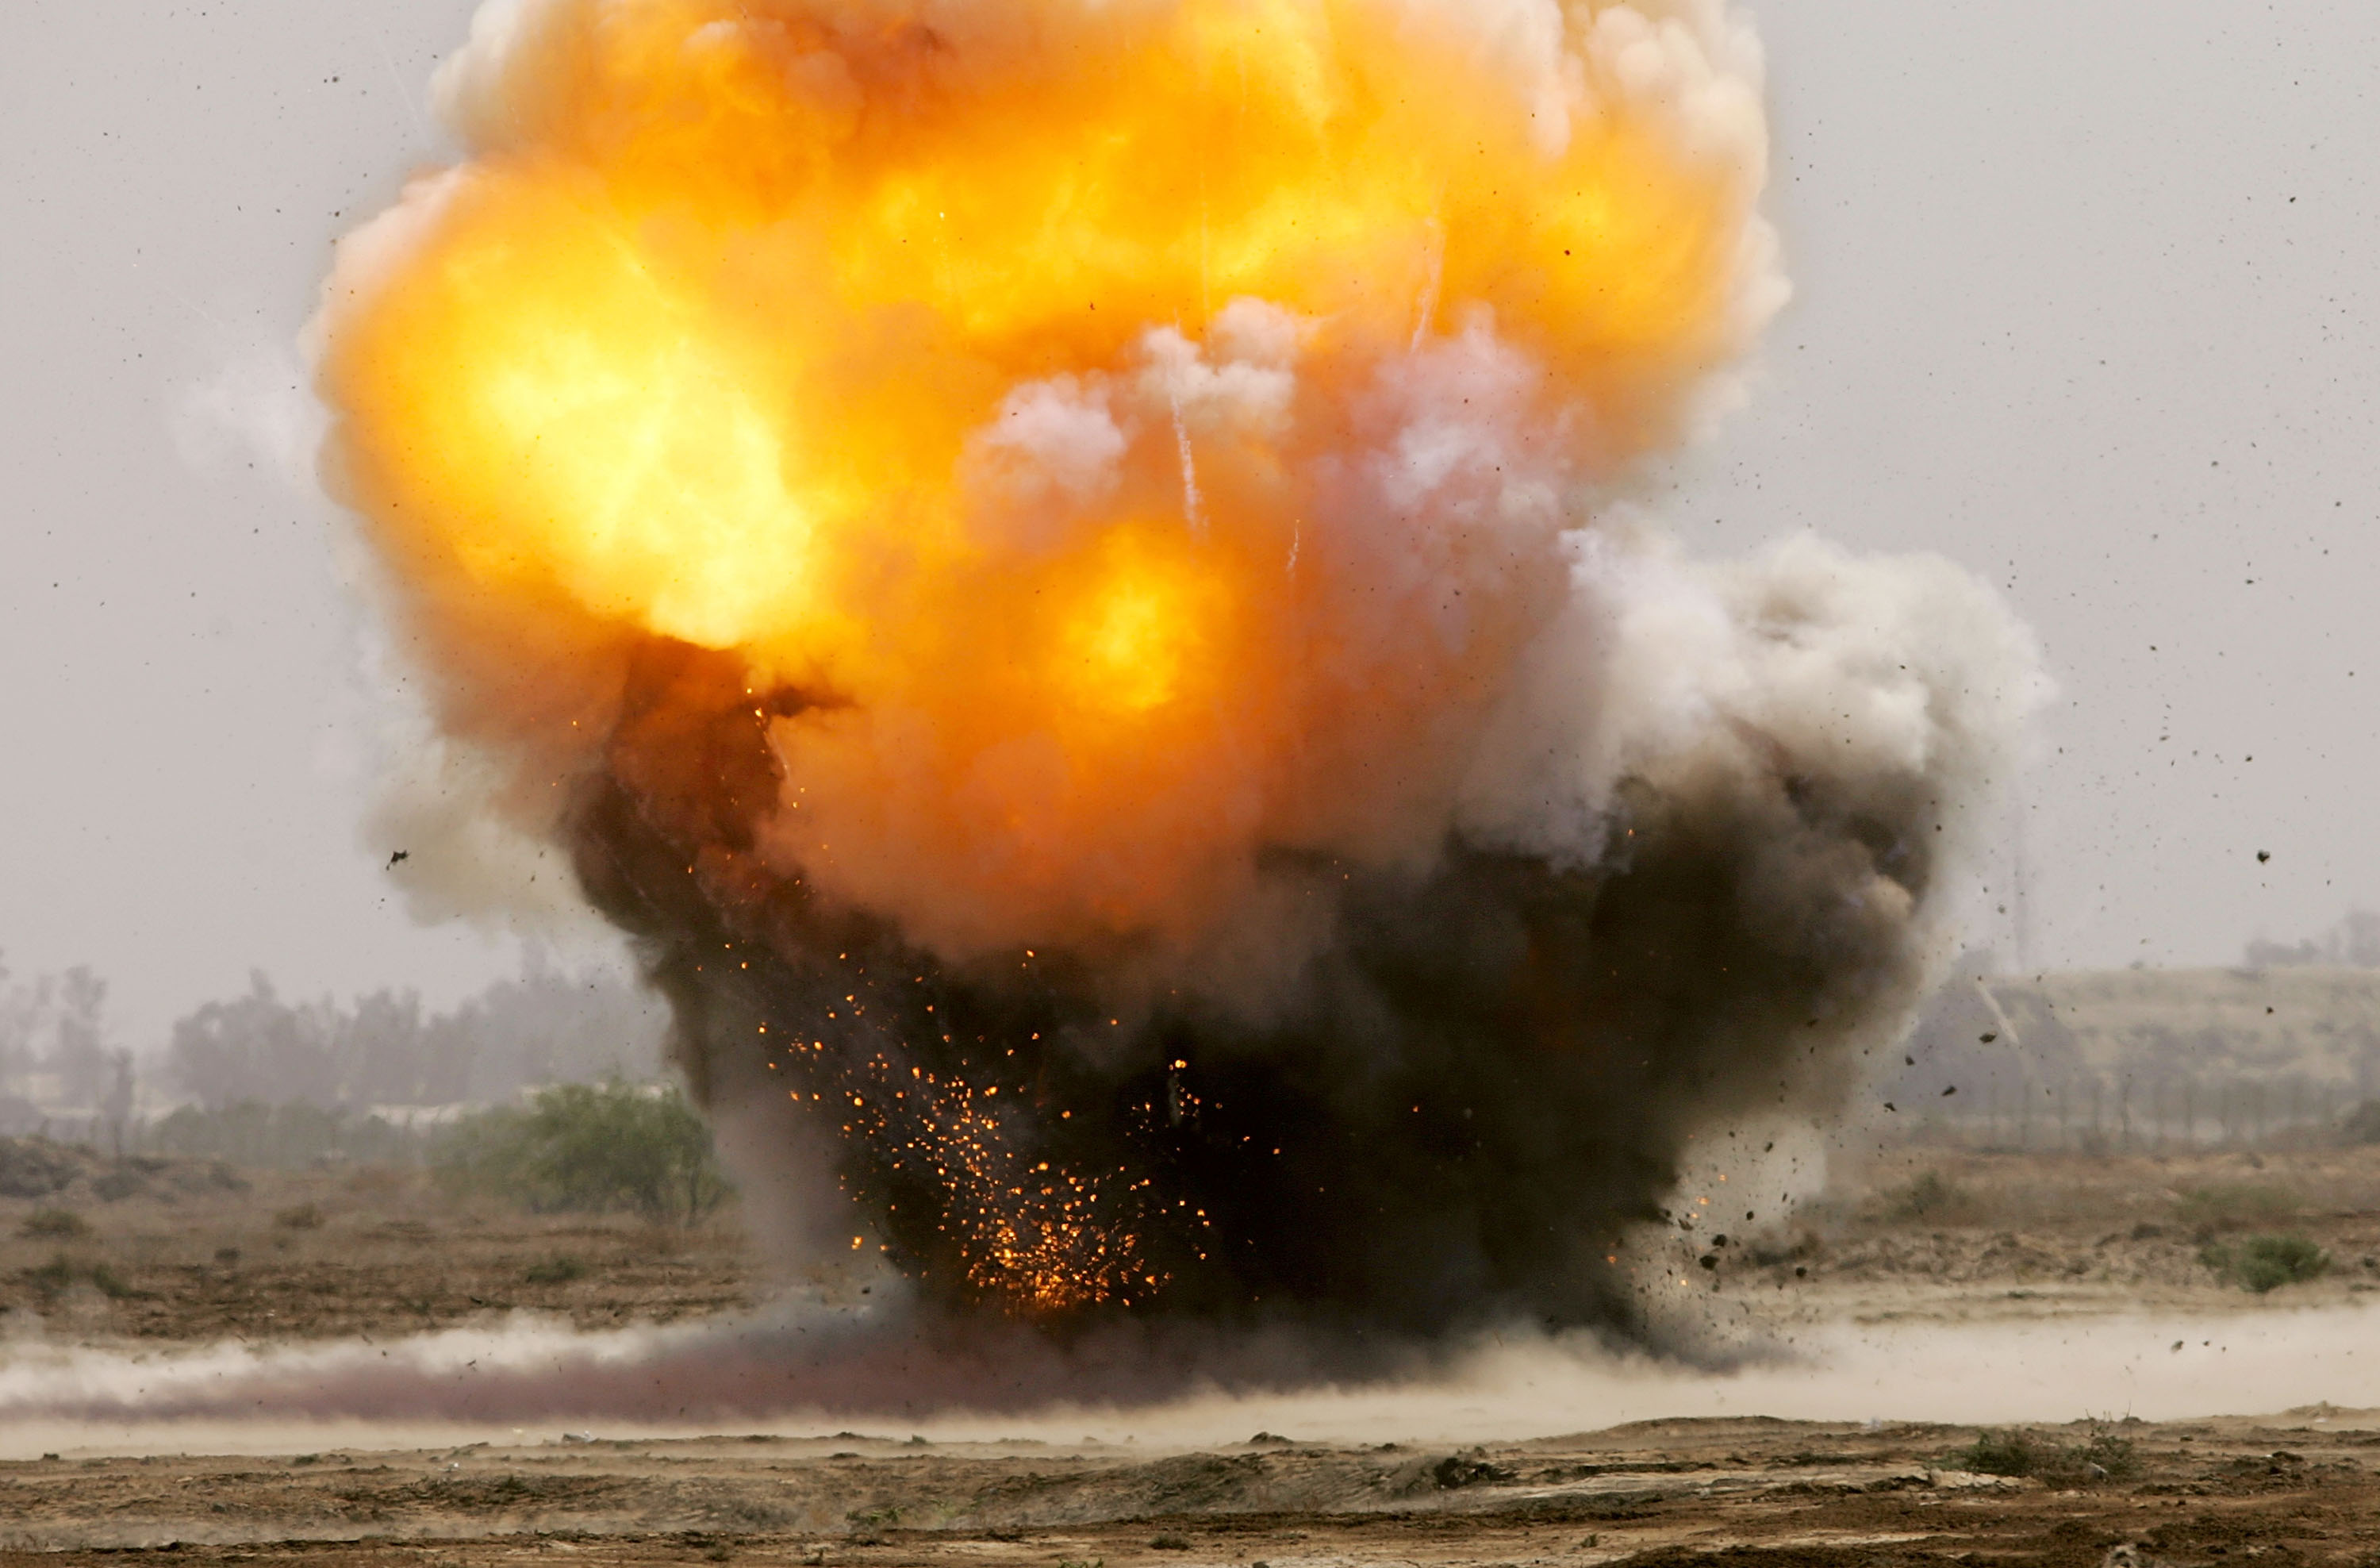 Captured explosives used in roadside bombs are detonated by an Army bomb-disposal unit in Baghdad in 2005.